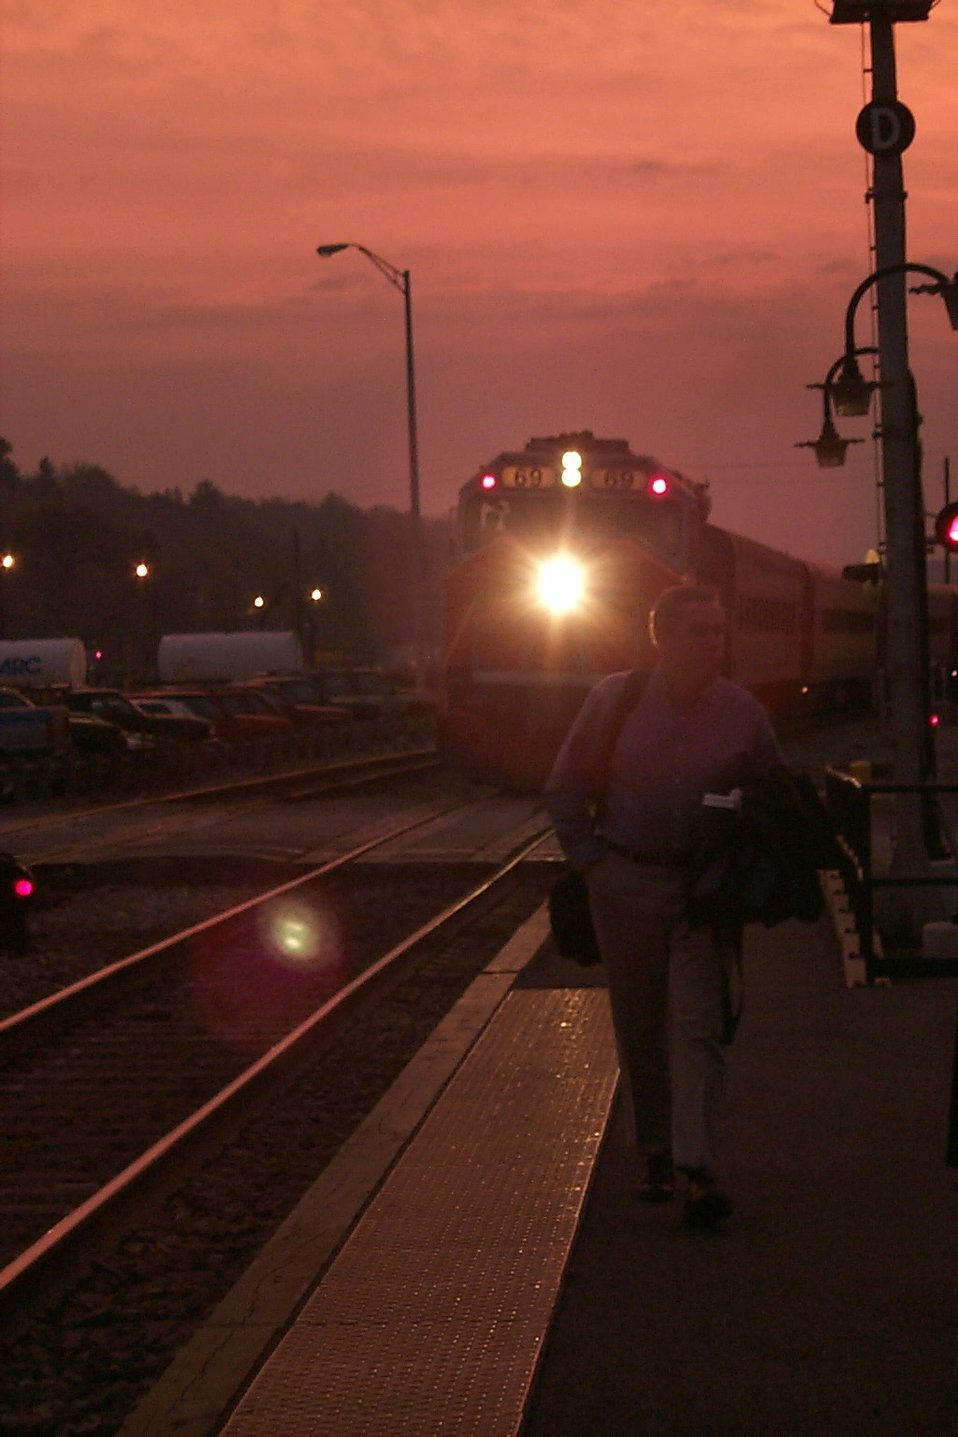 Sunrise at the MARC station at Point of Rocks.